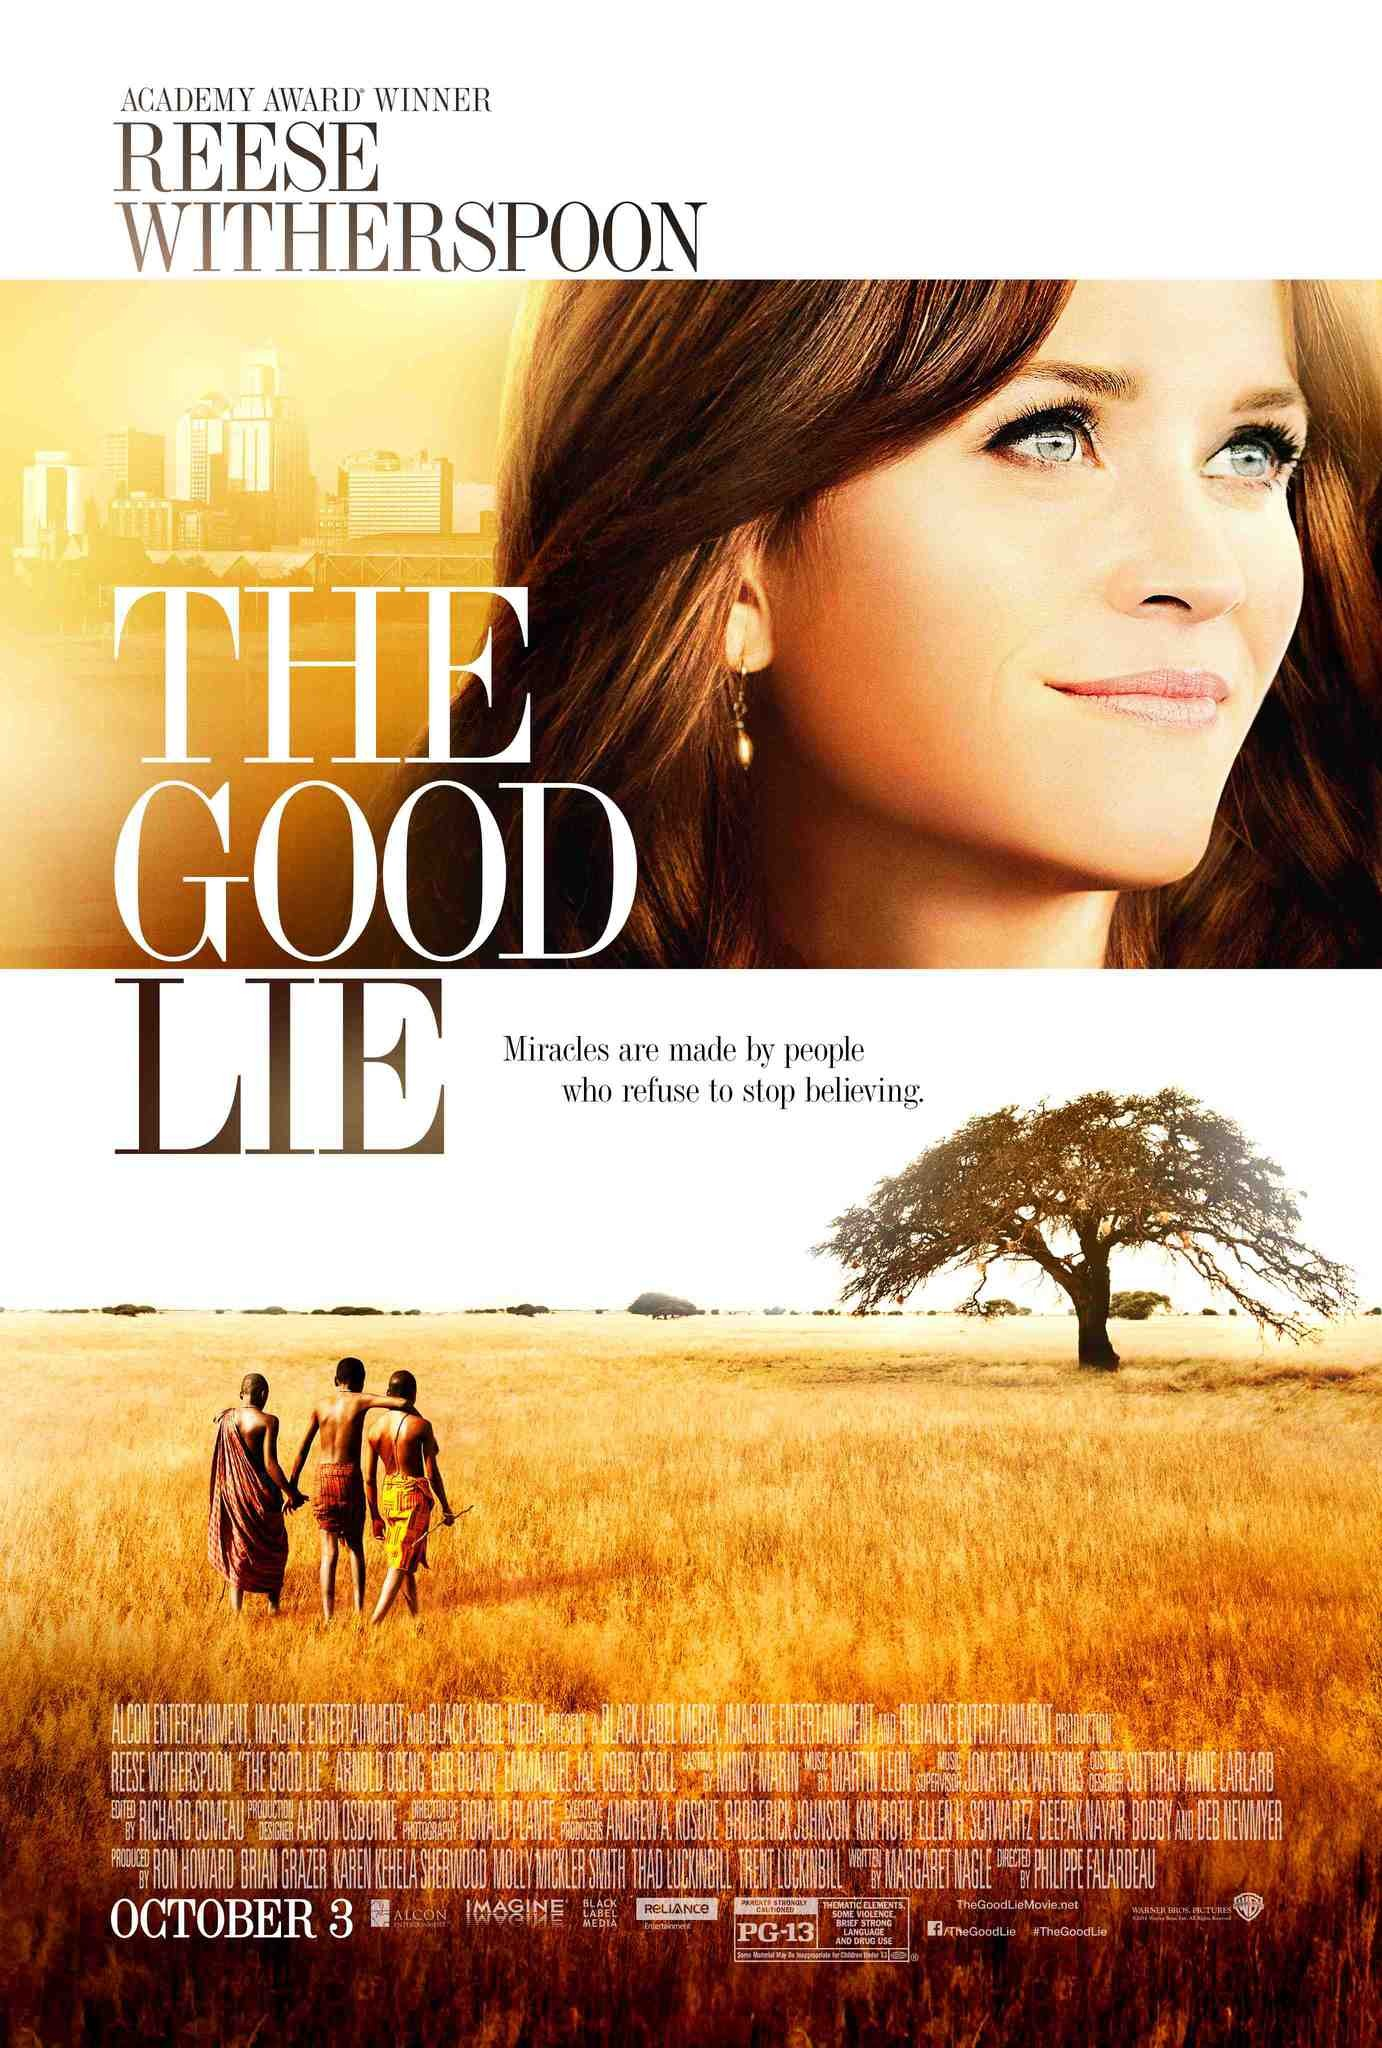 The Good Lie - This 2014 release starring Reese Witherspoon tells the story of how many Sudanese people fled violence and war. This film follows three brothers who were resettled in America. As you would expect, it is moving and emotional. Perhaps more surprising is how funny it is. A good film to show friends who believe the tabloid headlines that asylum seekers come to the west for an easy life.